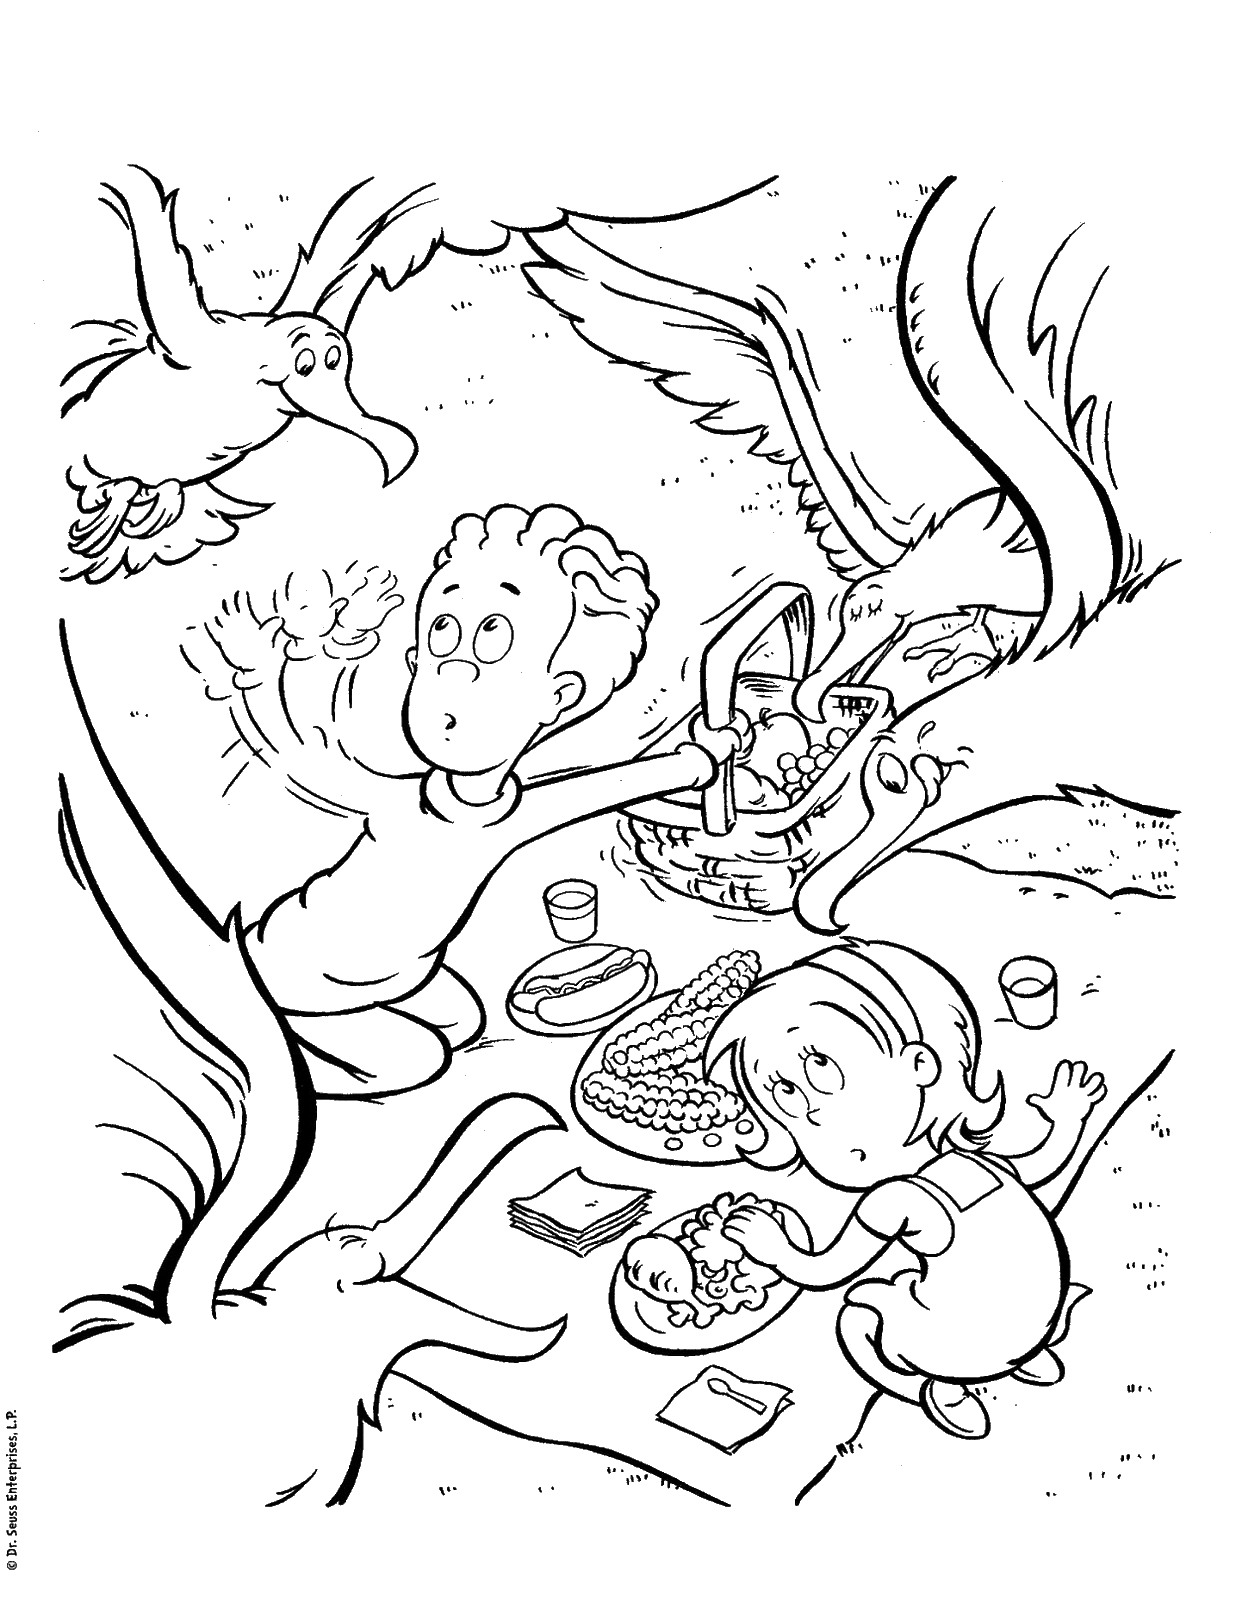 Sally and Nick Cat in the Hat Coloring Pages